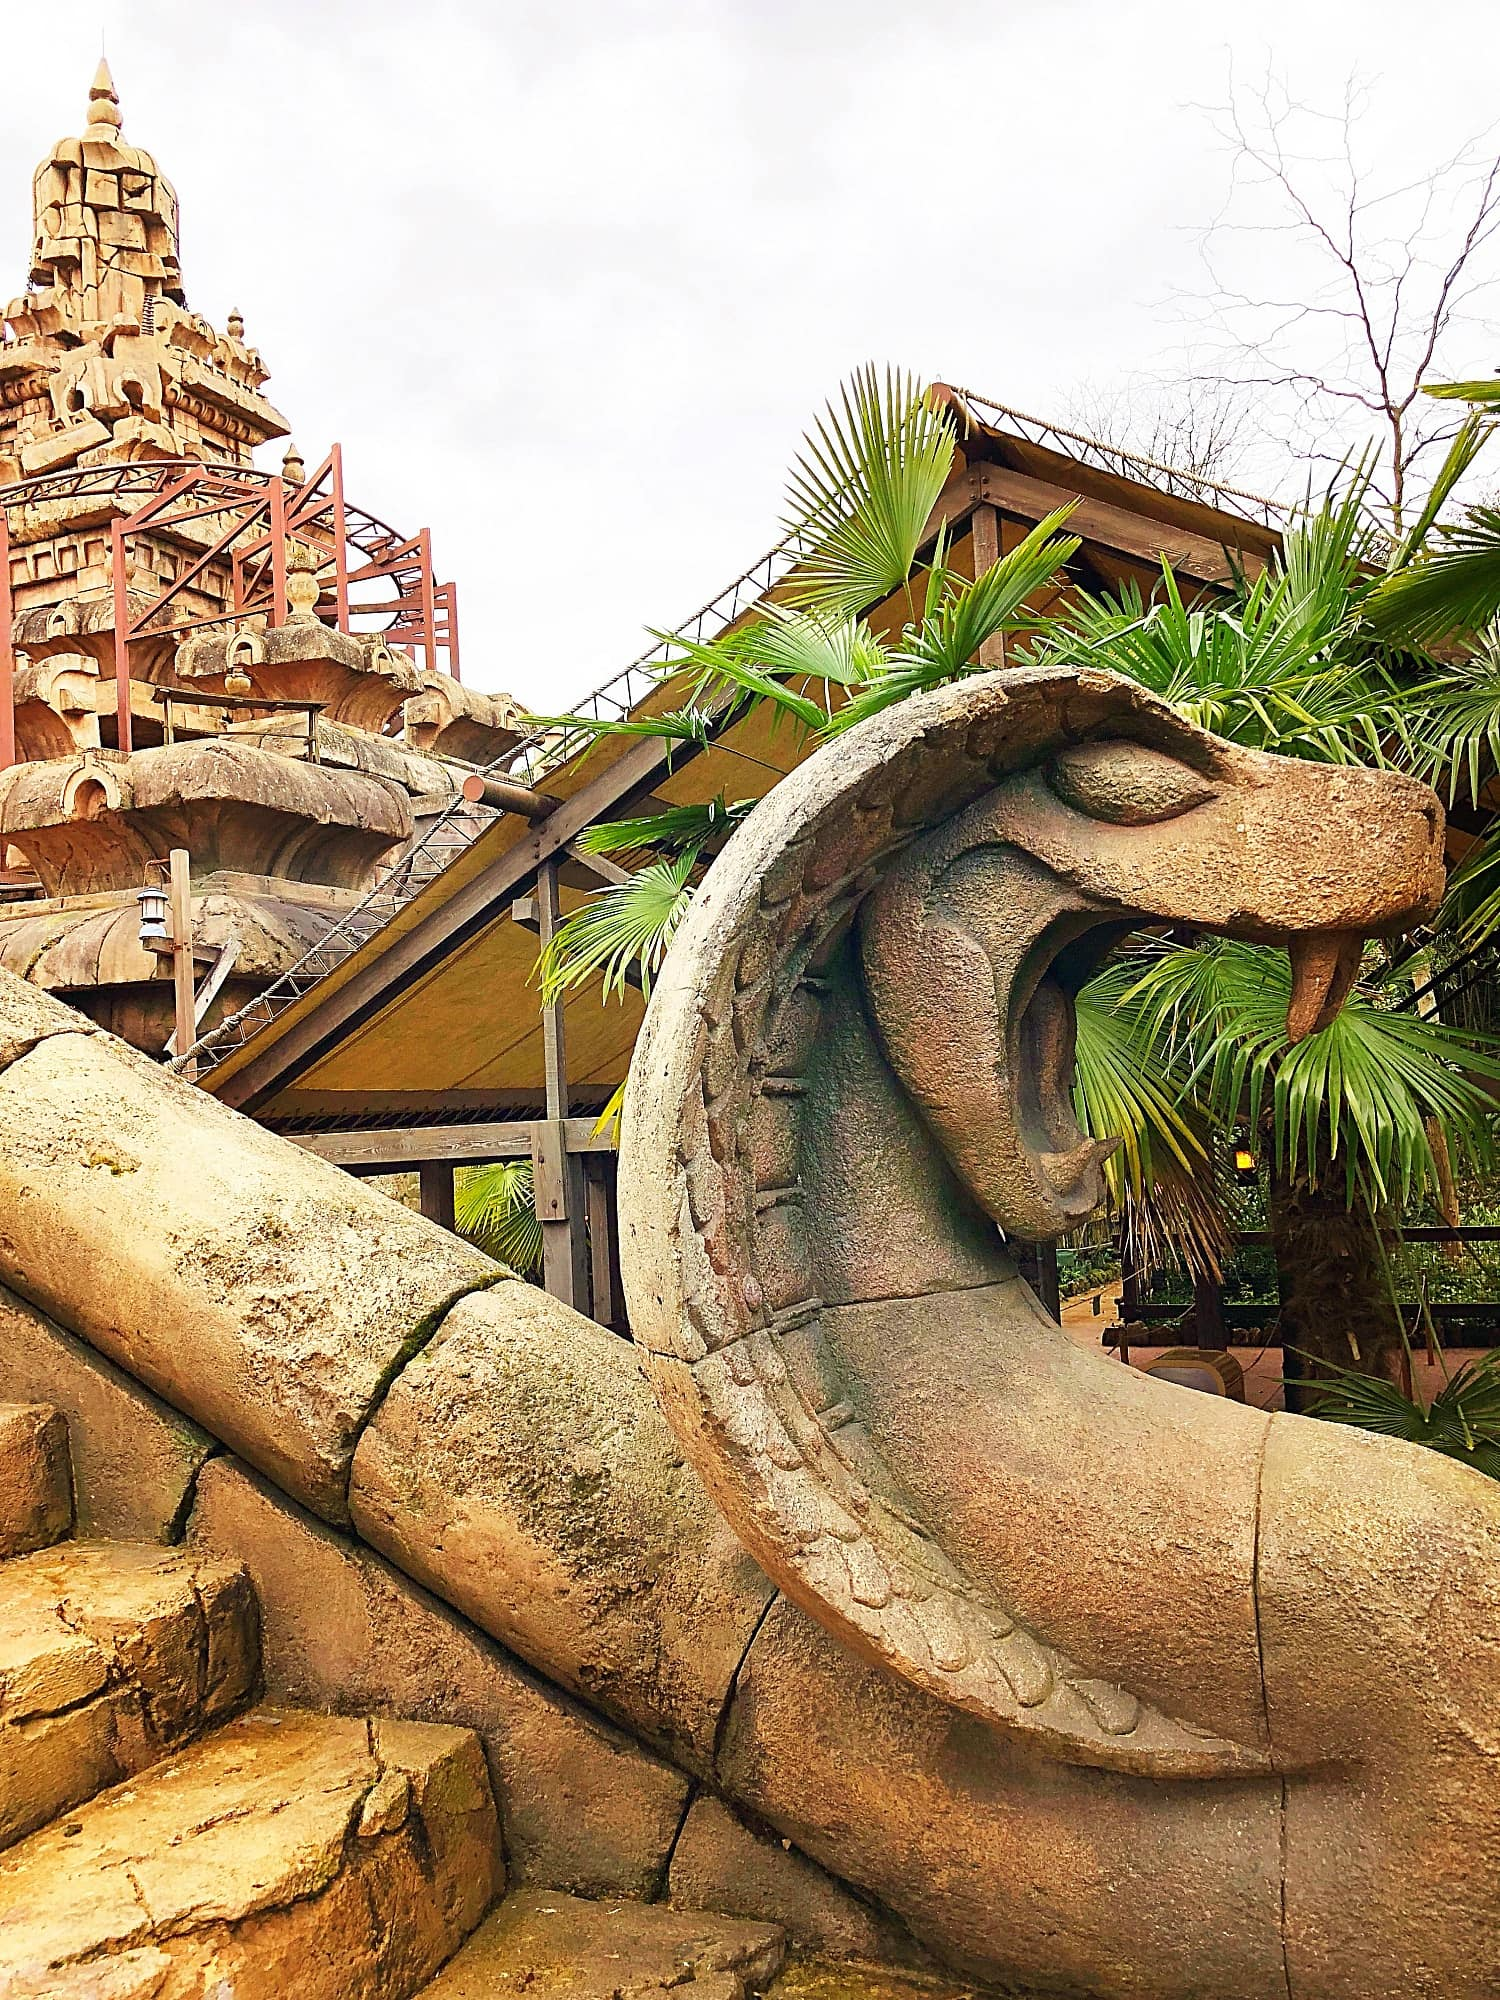 Indiana Jones and the Temple of Peril is an outdoor roller coaster at Disneyland Paris